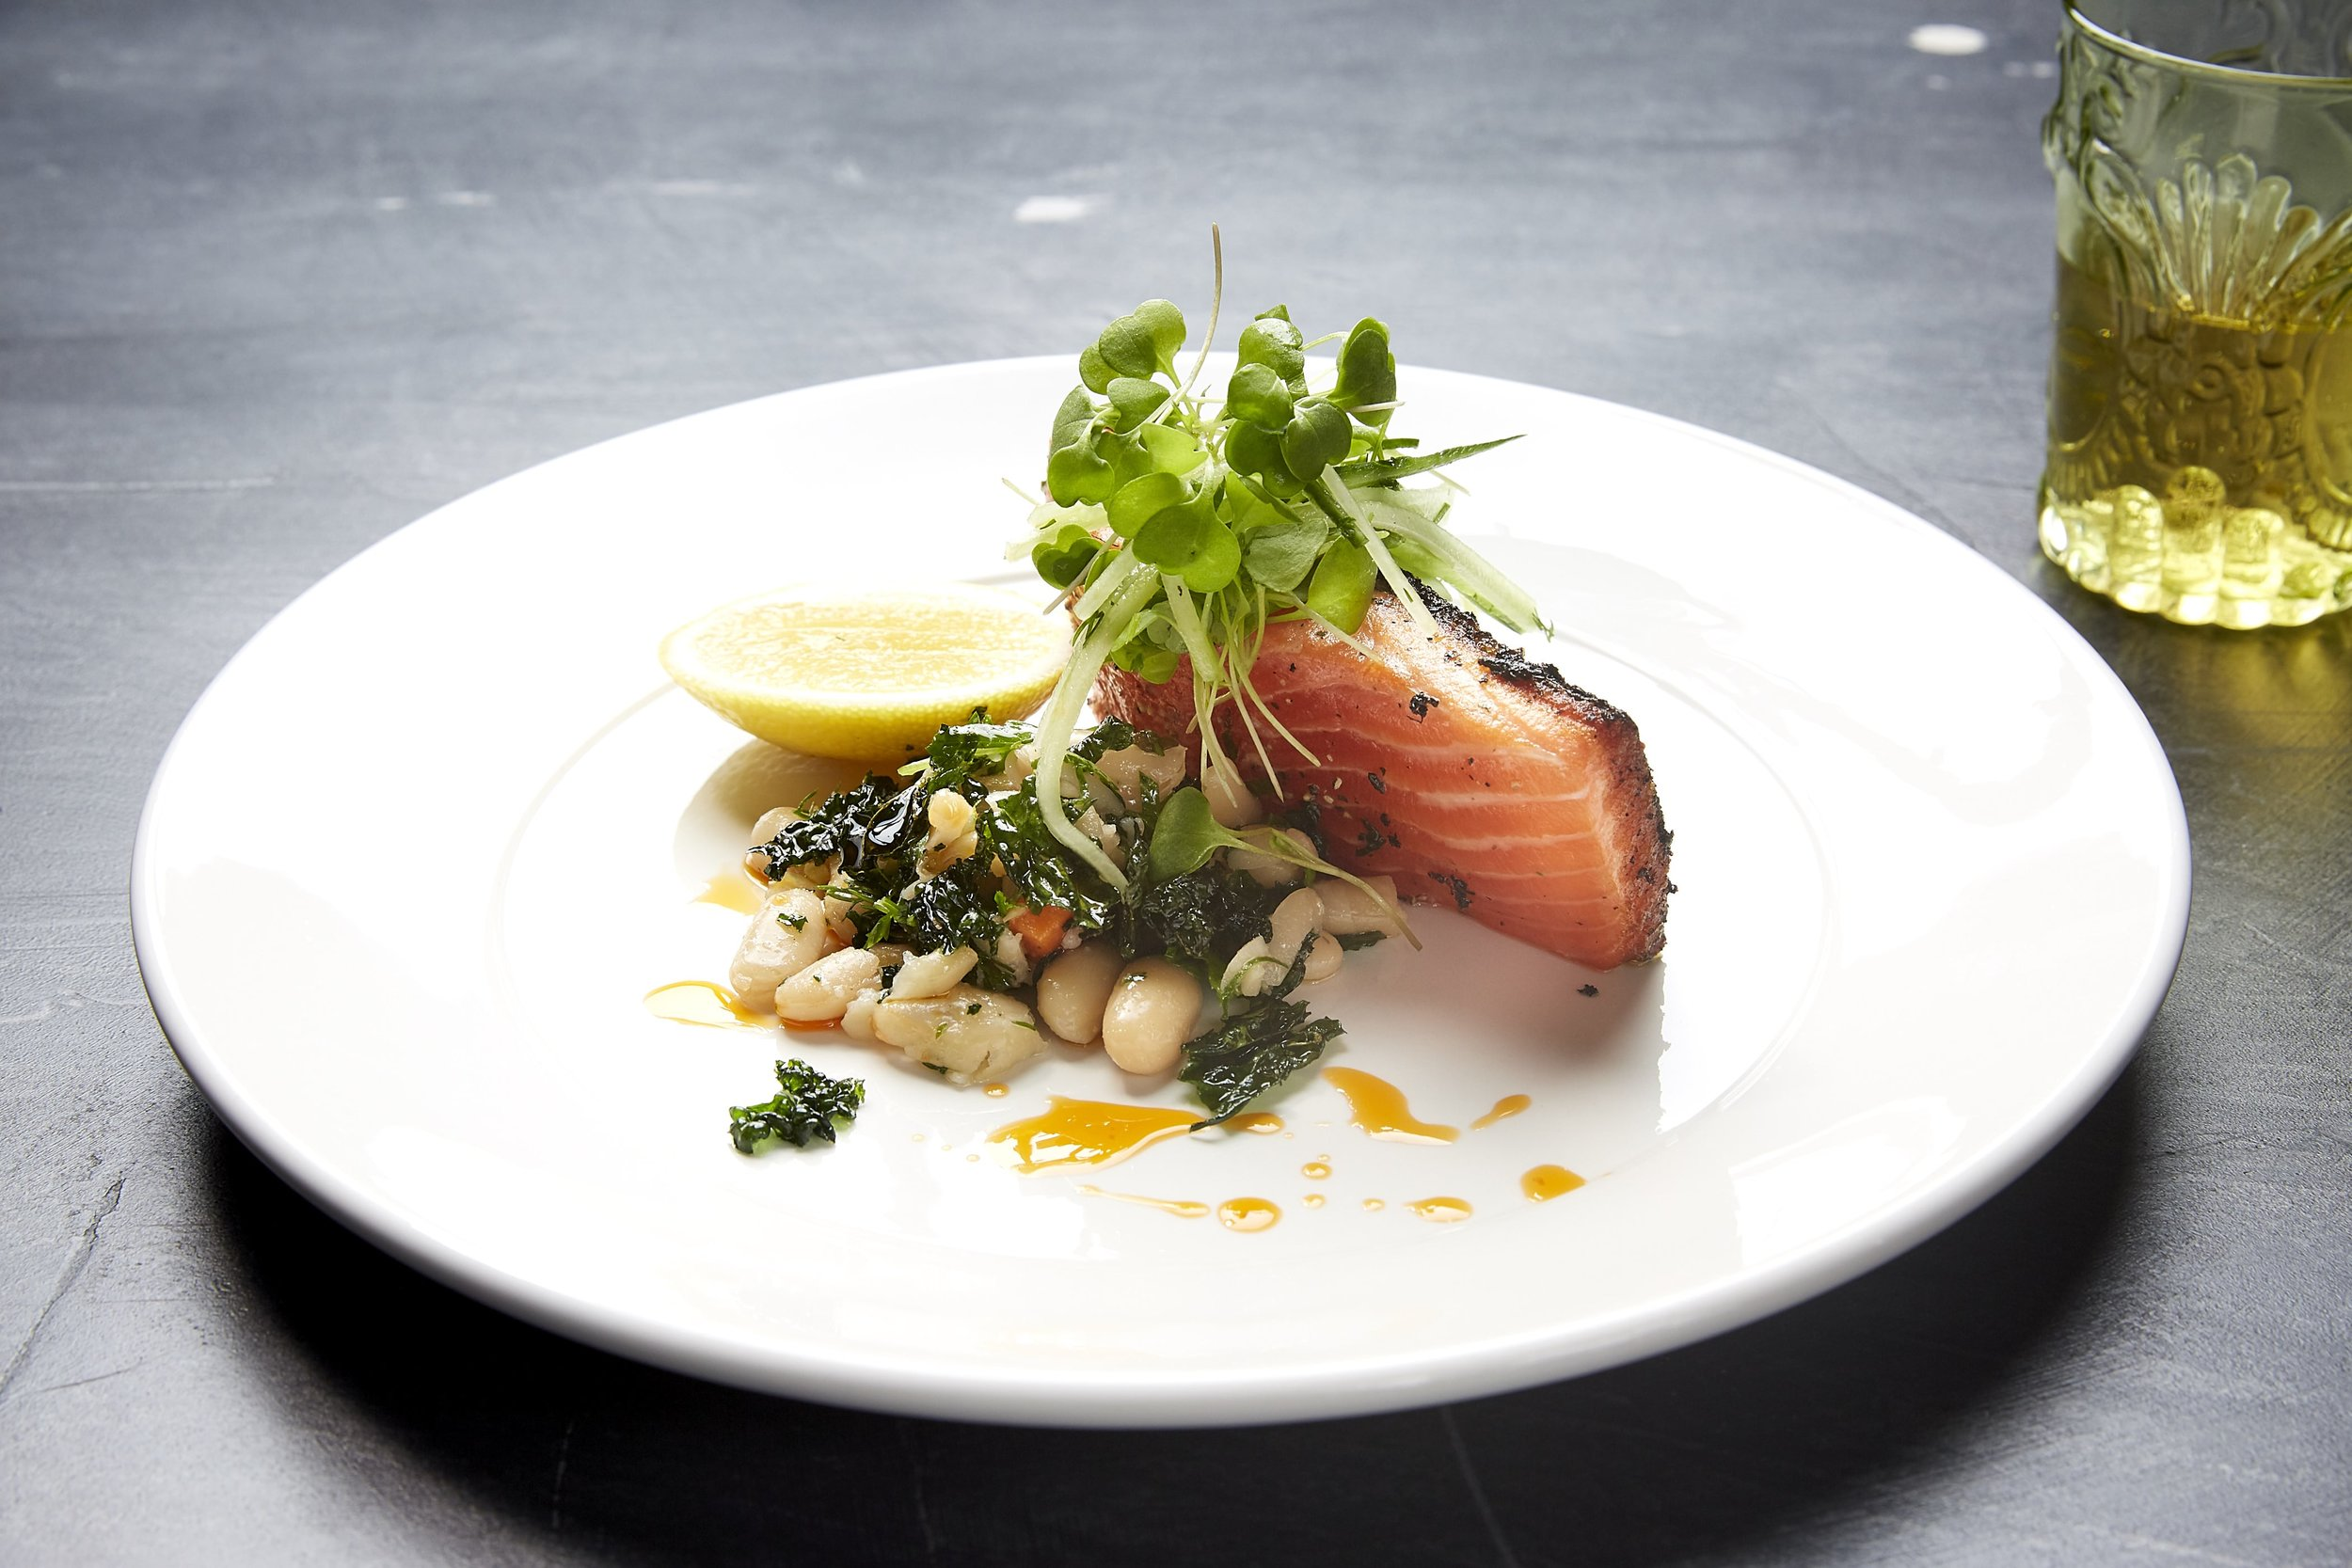 A salmon dish from gourmet caterers melbourne Damm Fine Food Co.